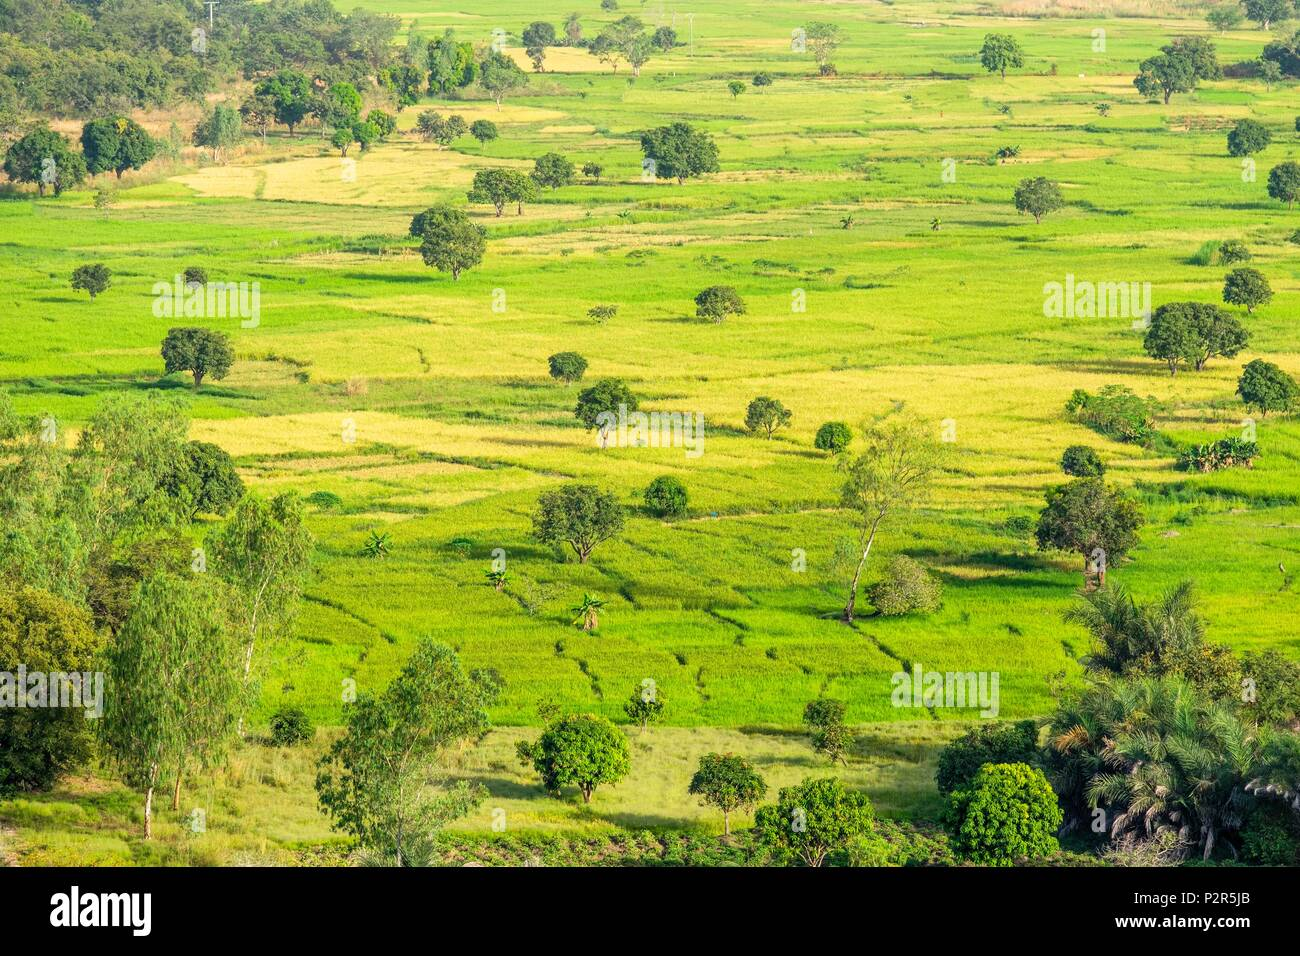 Burkina Faso, Cascades region, Sindou, country of the Senoufo ethnic group, panoramic view over sugar canne fields from the Sindou peaks - Stock Image